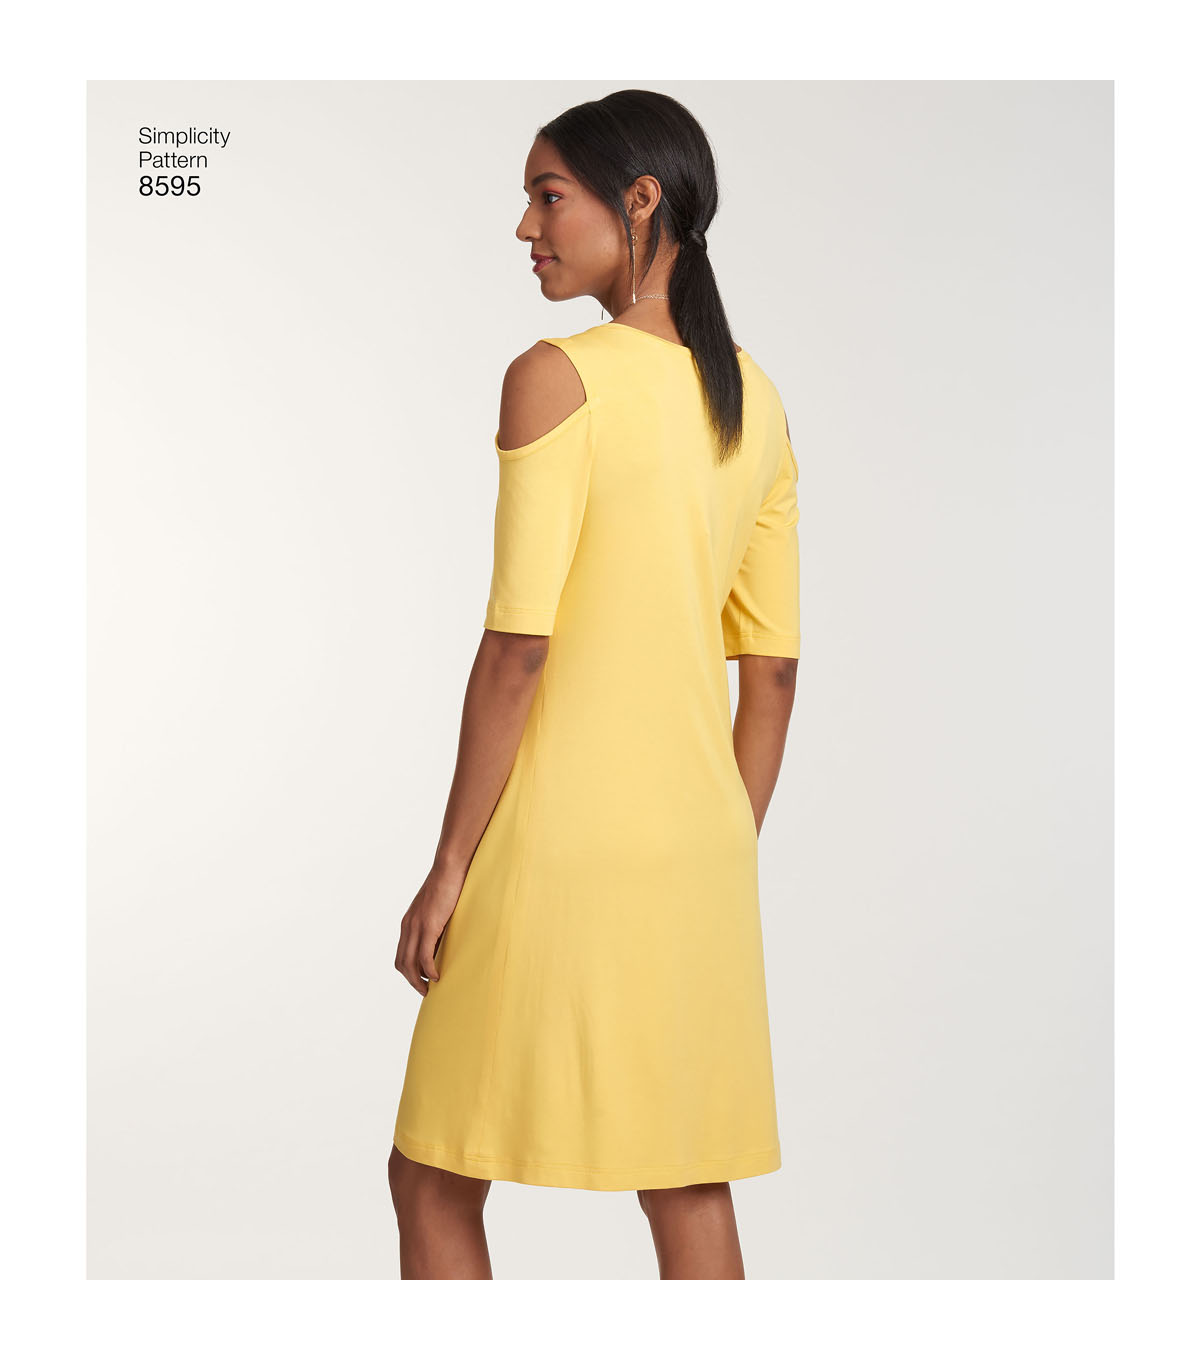 Simplicity Pattern 8595 Misses\u0027 Easy-to-Sew Knit Dresses-Size A (XS-XL)